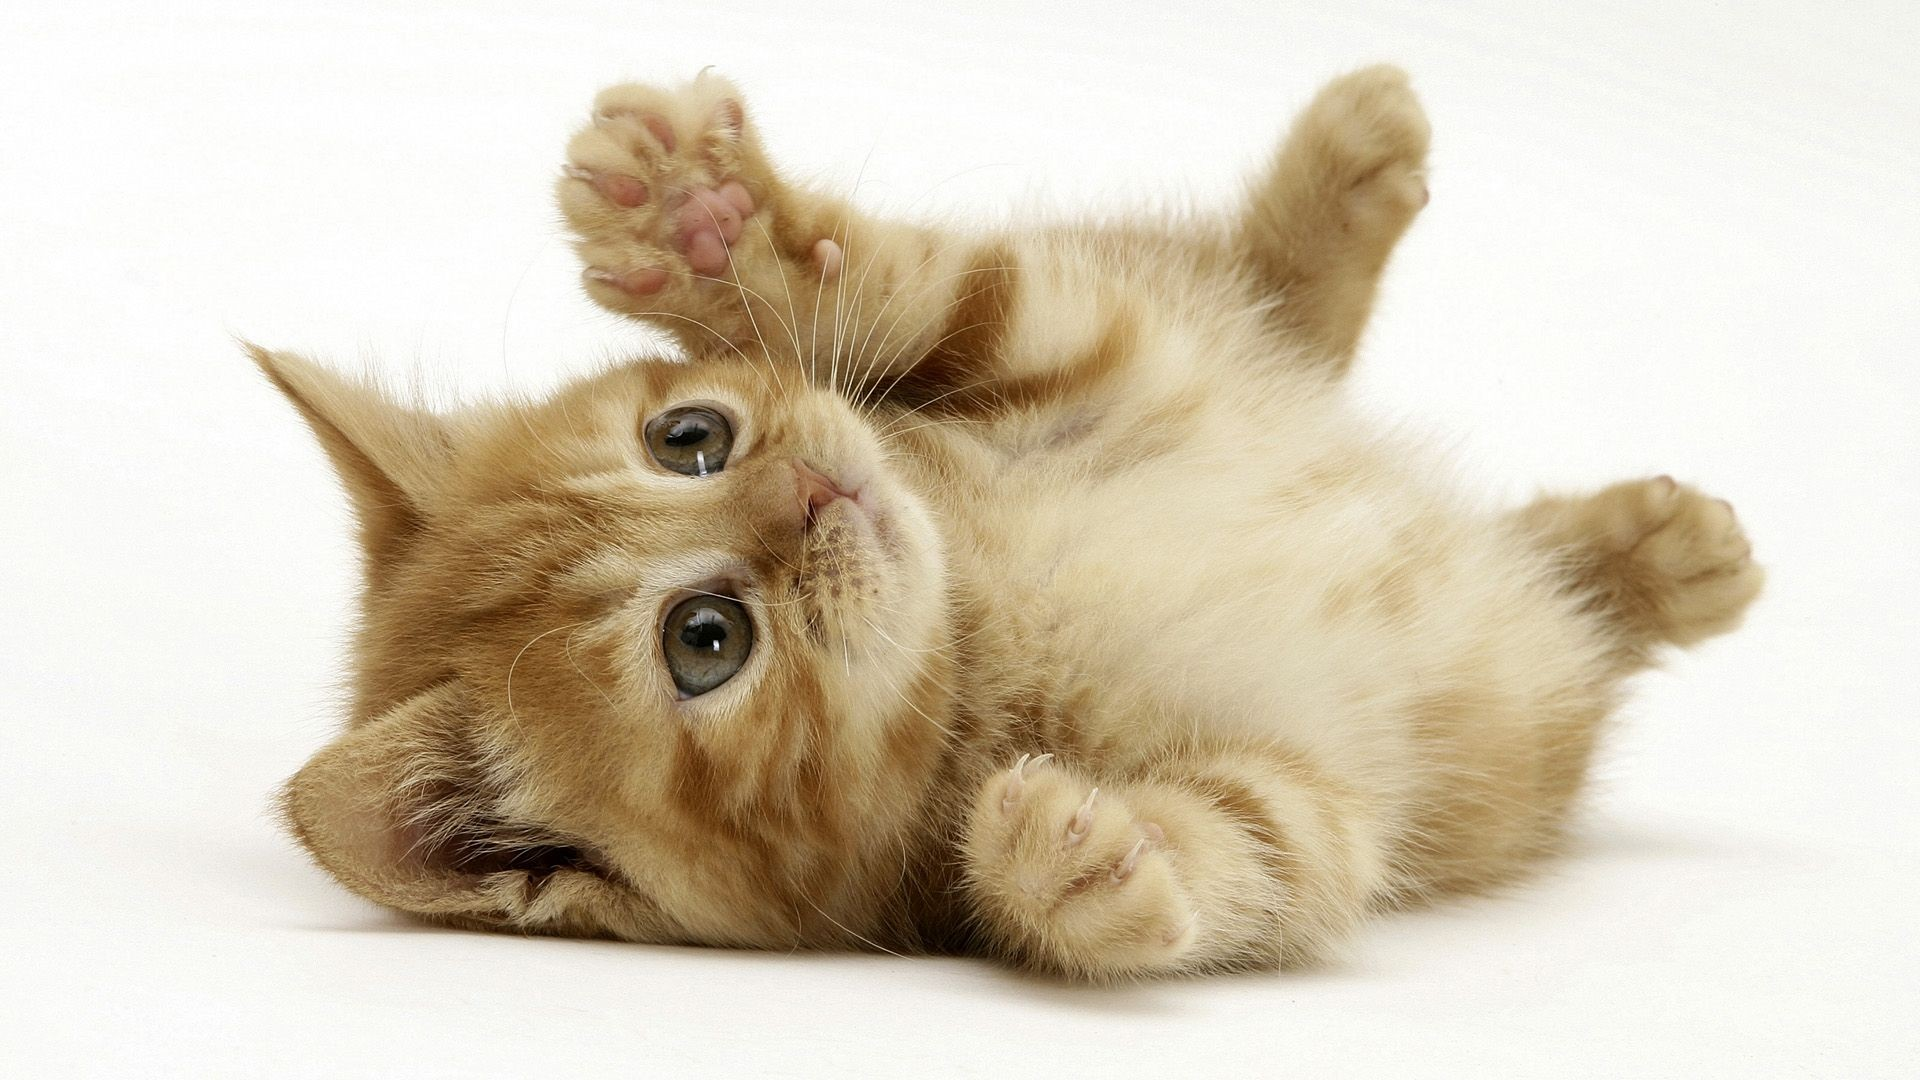 Wallpapers Of Cats